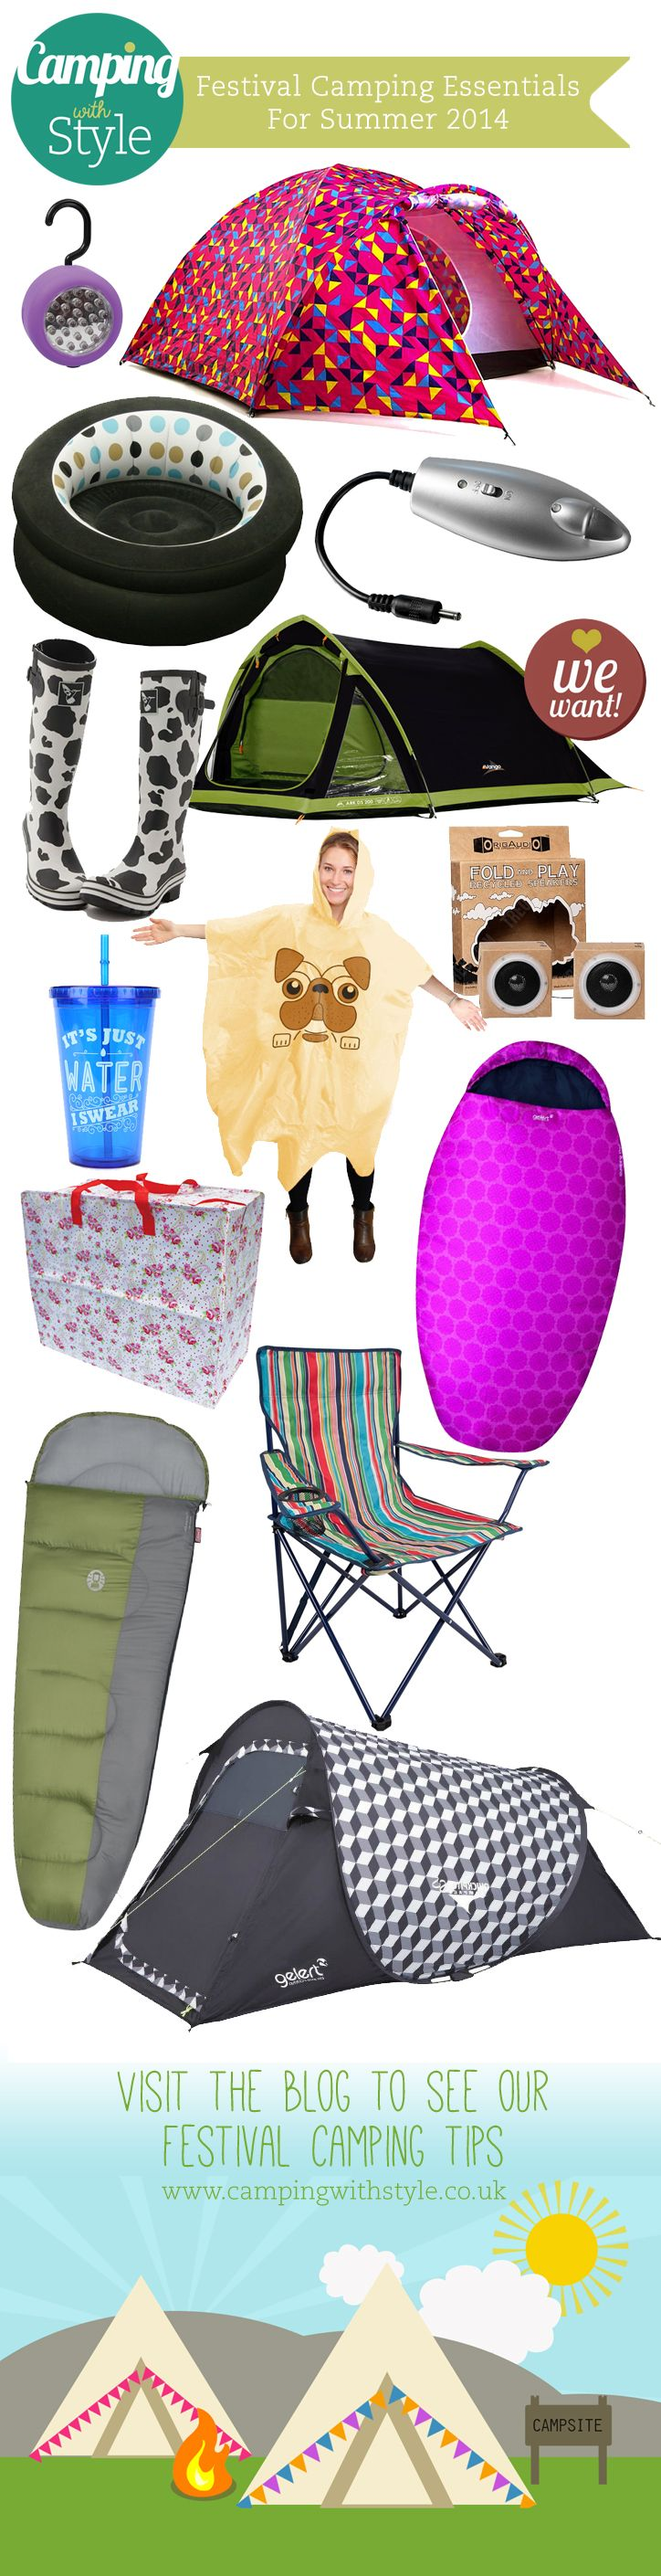 Music Festival Summer Camping Tips Essential Camping Products. For super style - just add a COBB Grill. www.cobbgrillamerica.com